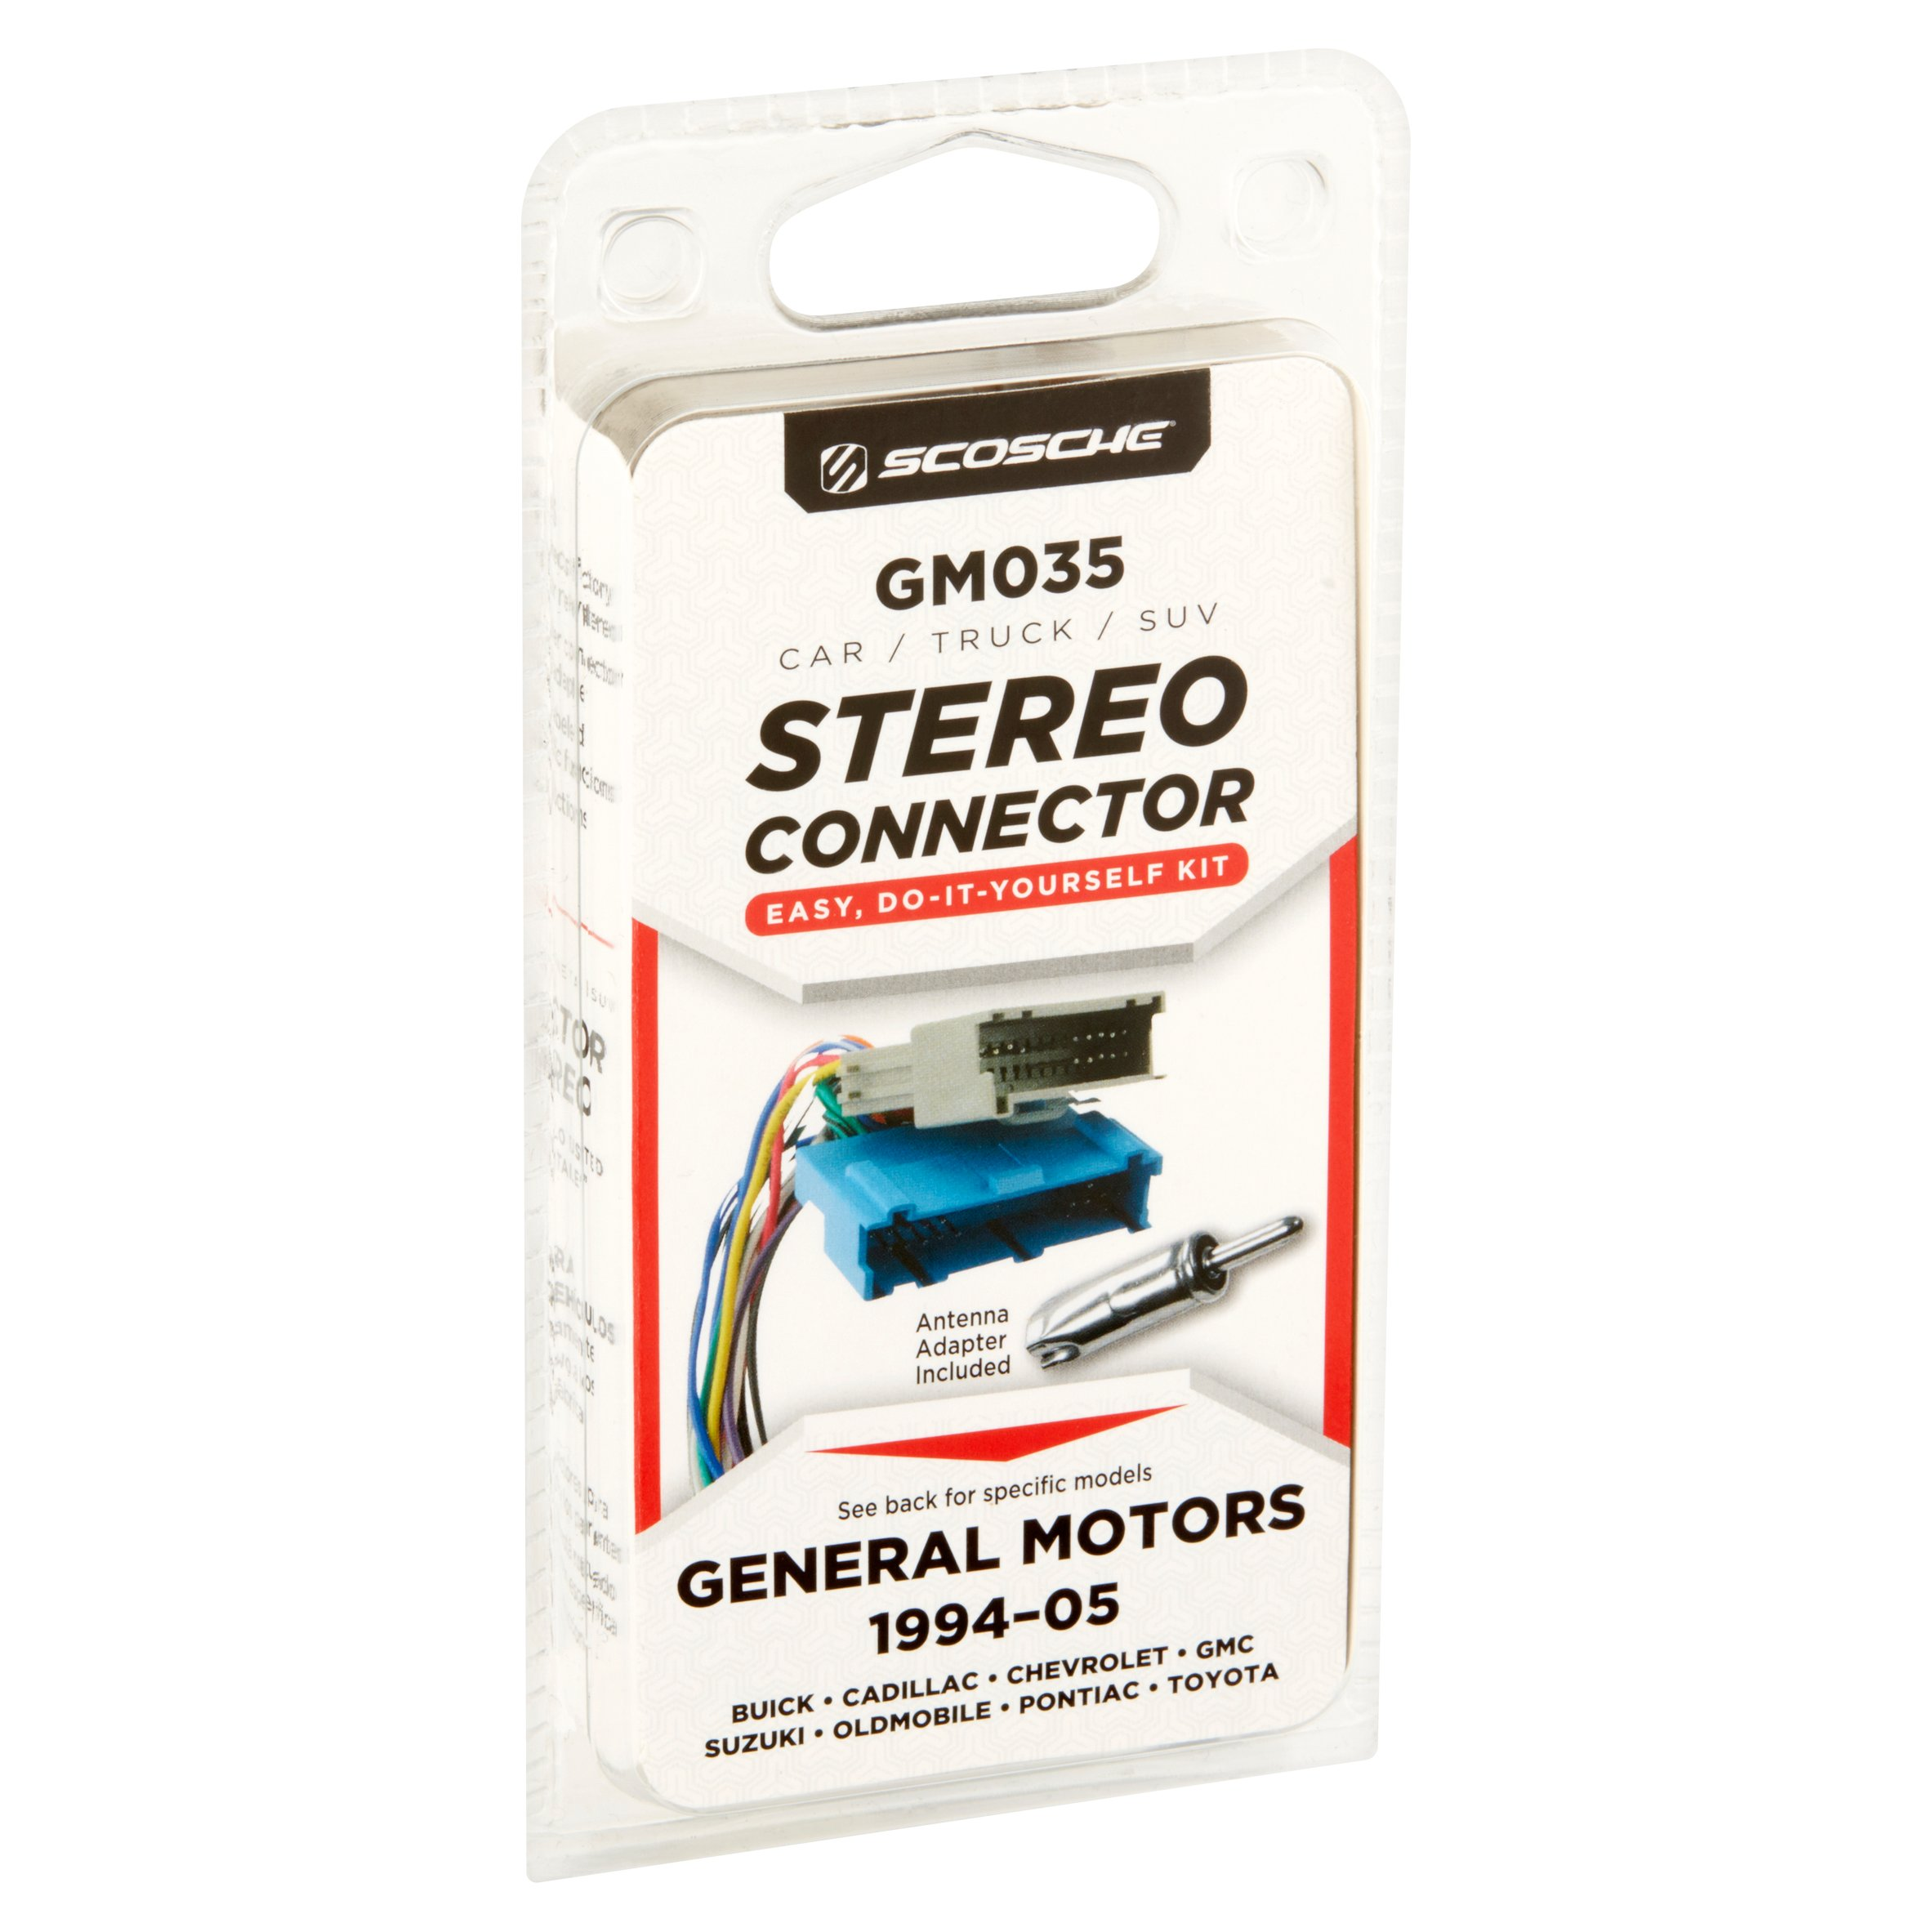 scosche car stereo wiring connector 94 06 gm walmart com